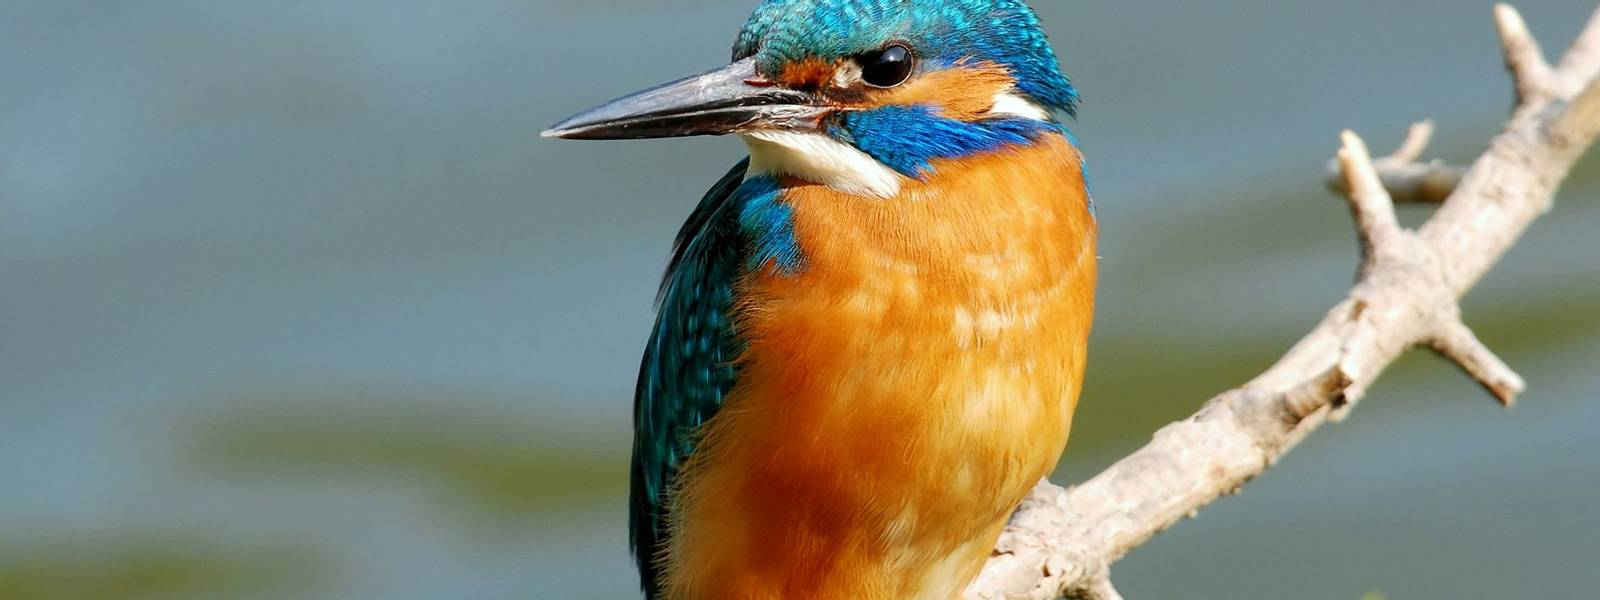 NaturalWorld-KingFisher-AdobeStock_17049571.jpeg